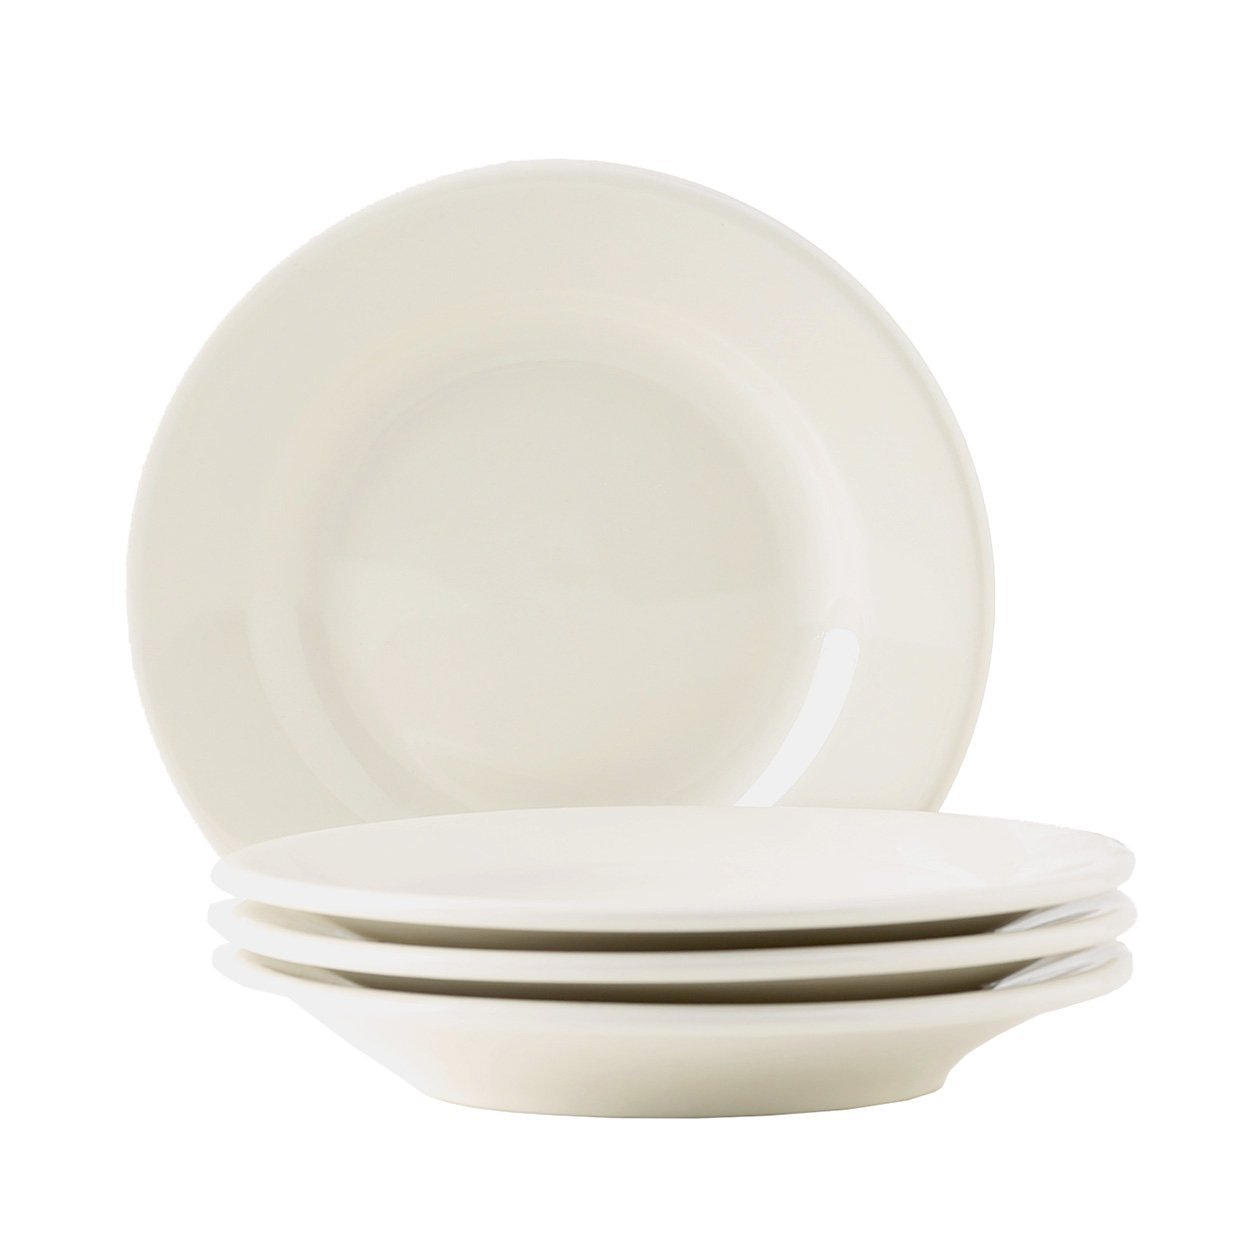 Tuxton Home Reno American Wide Rim Salad Plate (Set of 4), 7 1/8'', Eggshell White; Heavy Duty; Chip Resistant; Lead and Cadmium Free; Freezer to Oven Safe up to 500F